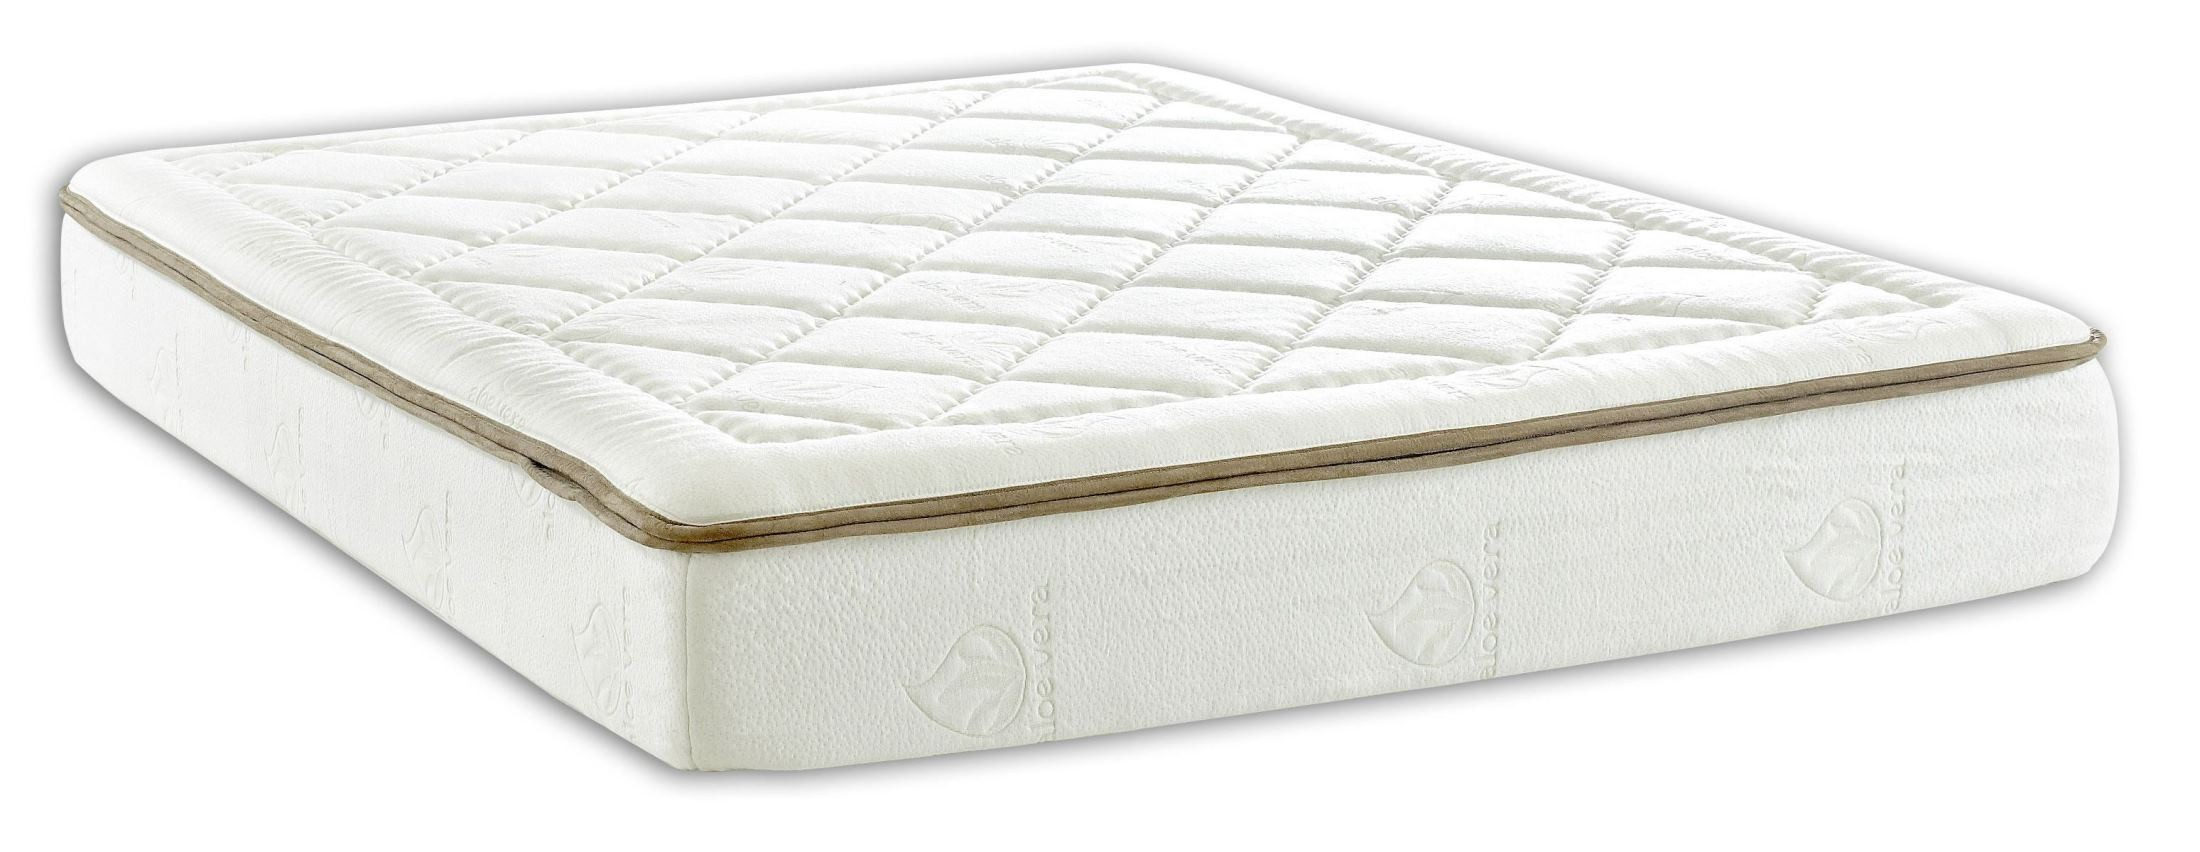 Dream Weaver 10 Memory Foam King Mattress From Klaussner Drmwvrkkmat Coleman Furniture